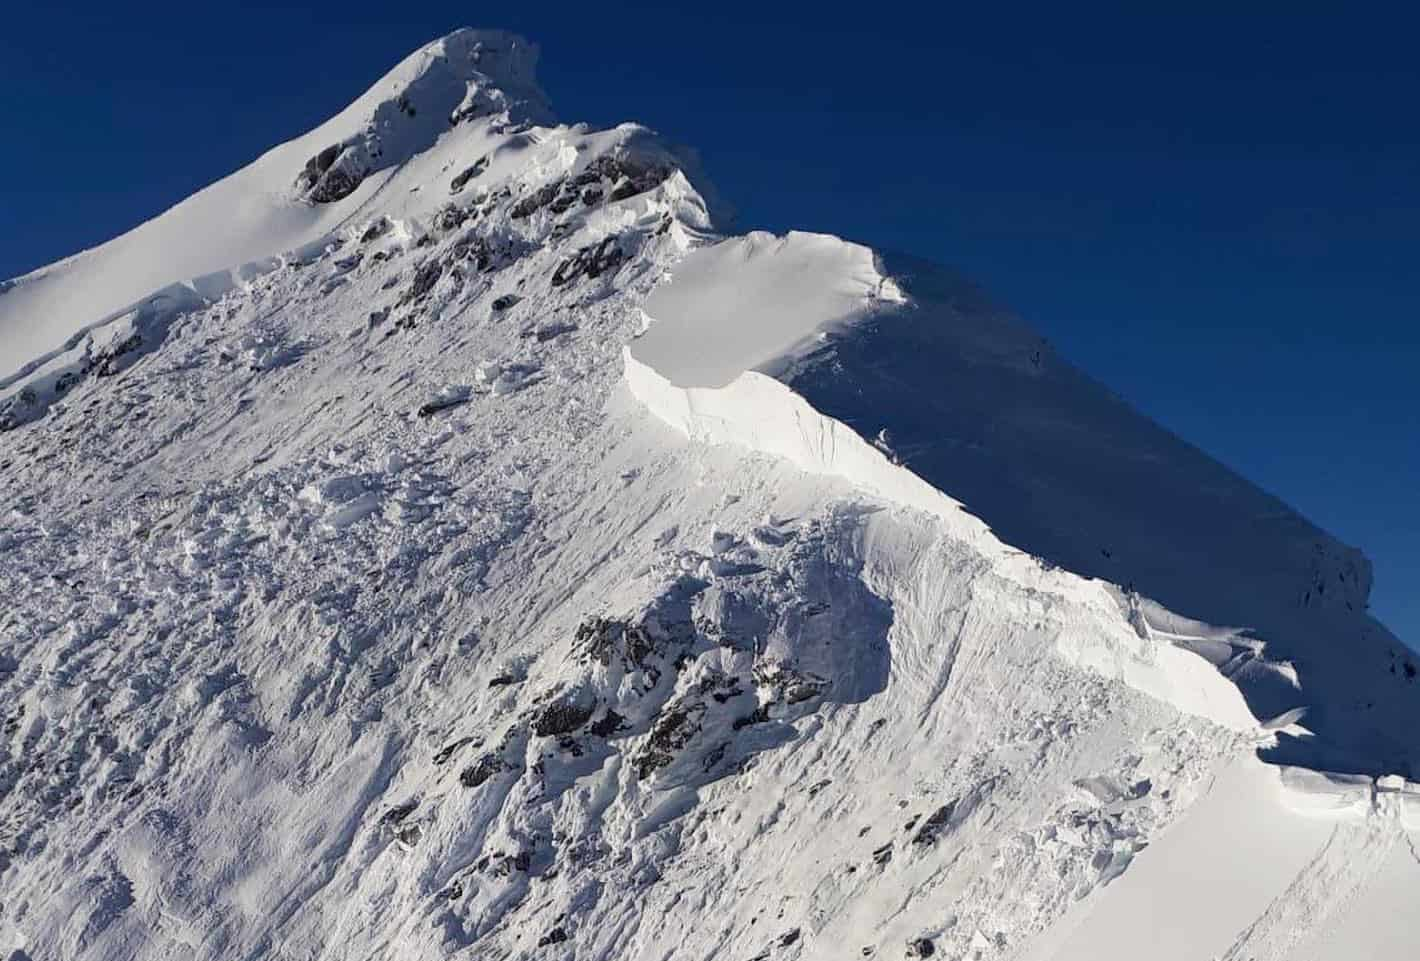 Bad Year For Avalanches in Northern Hemisphere - 16 Deaths in The US This Month